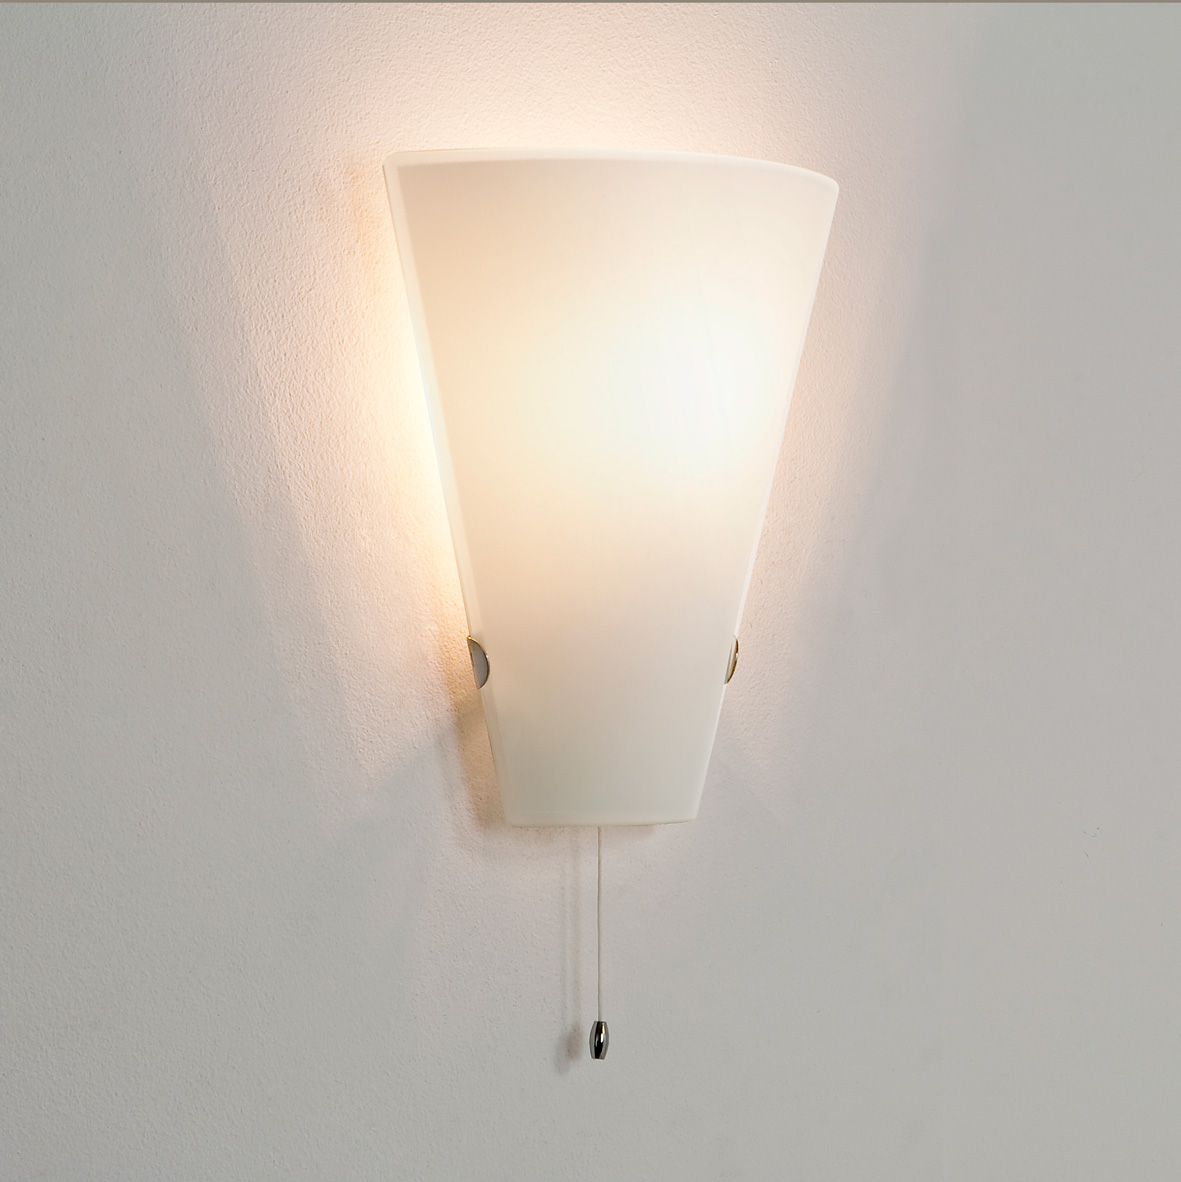 Astro Taper 0248 dimmable pull cord switch wall light 60W